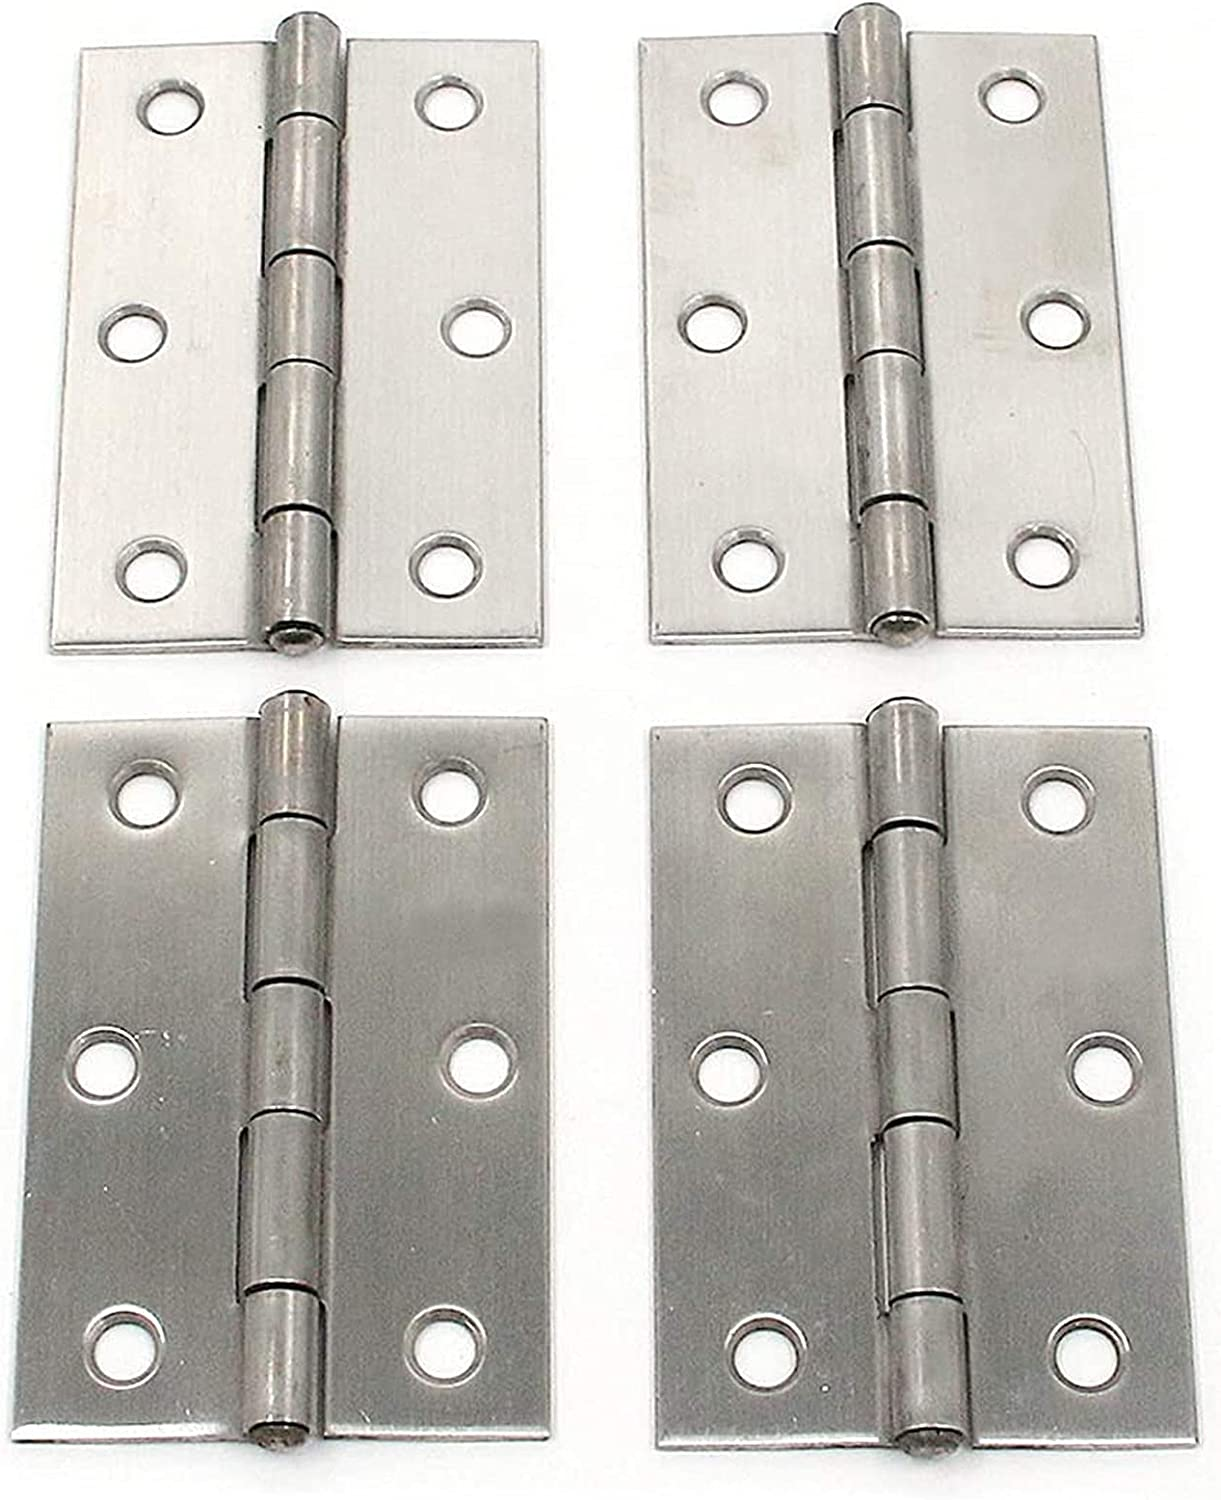 MY MIRONEY 3-Inch Long Hardware Stainless Steel Hinges Cabinet Butt Hinges Folding Door Hinge for Cabinet Gate Closet Jewelry Box Pack of 4